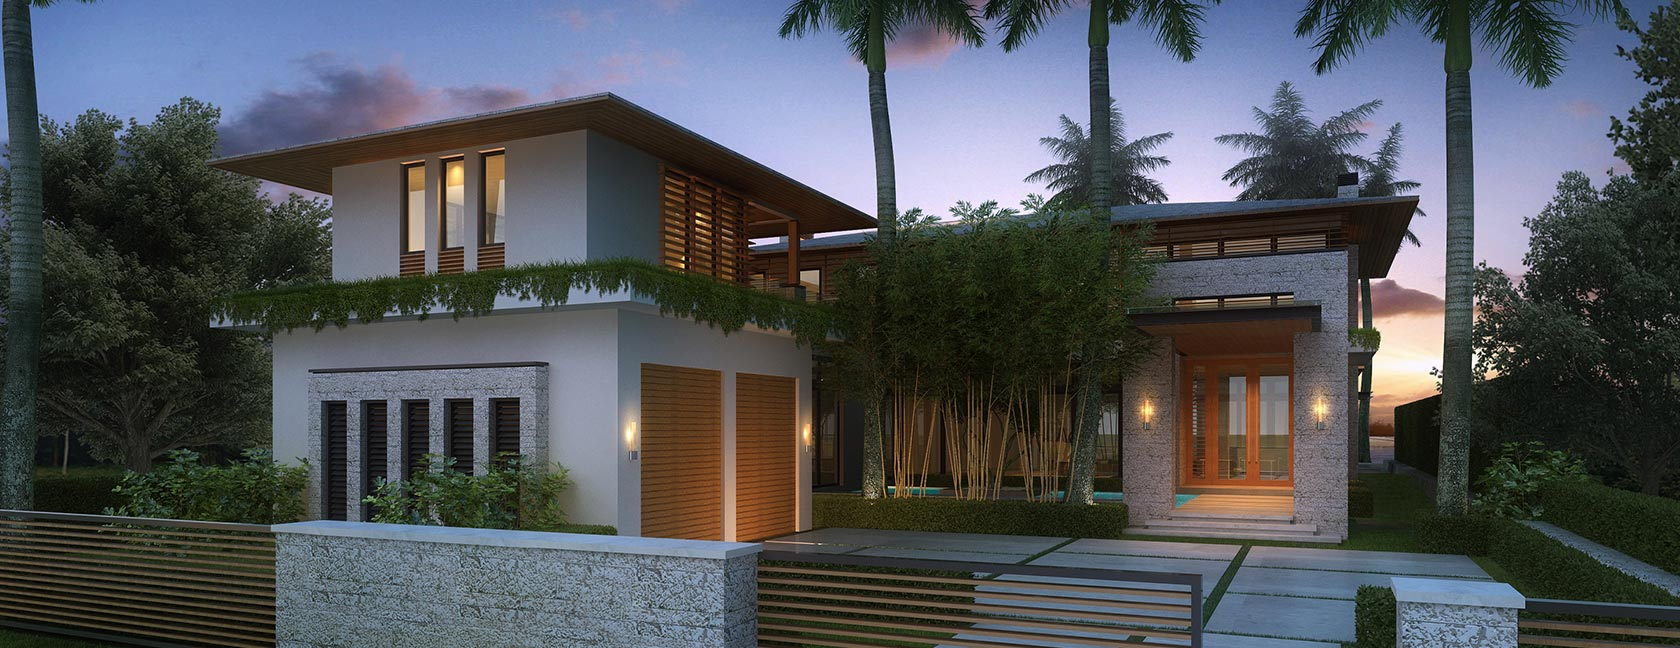 3D Architectural Rendering Design Company